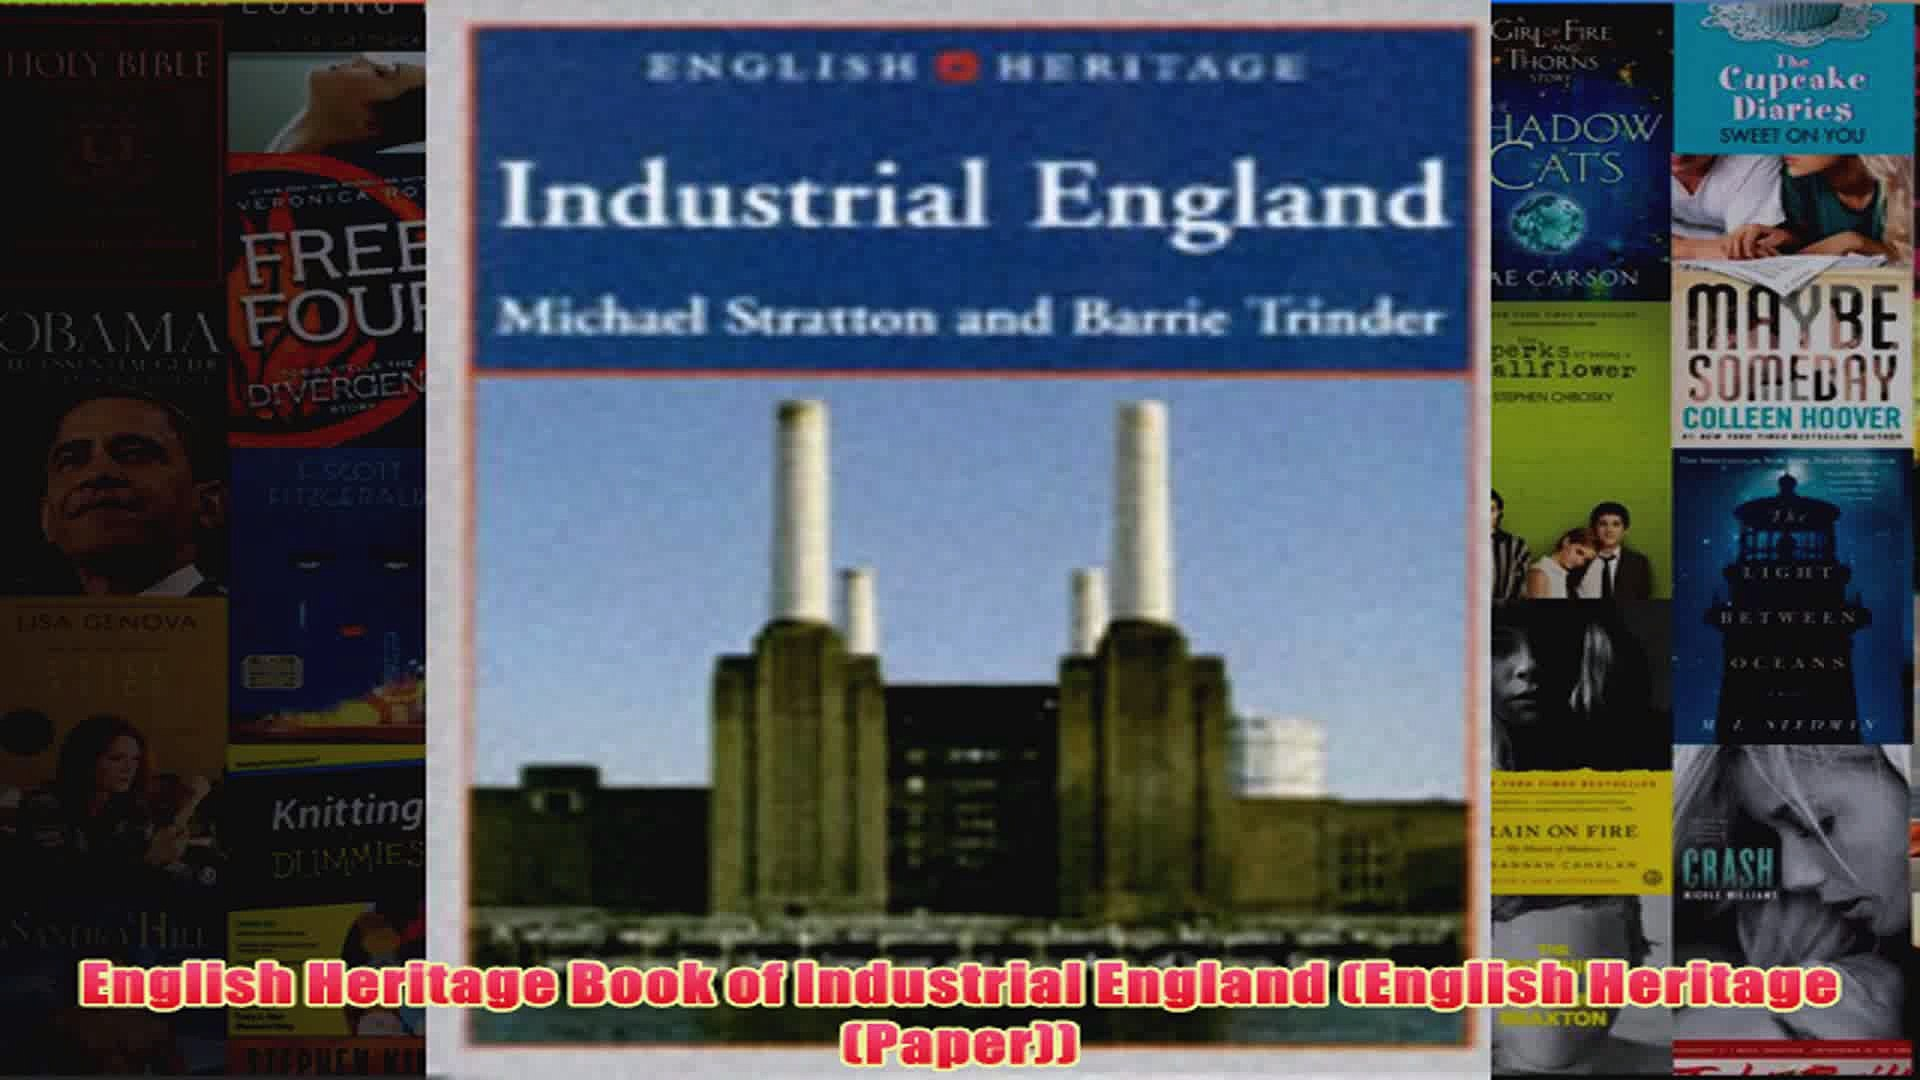 English Heritage Book of Industrial England English Heritage Paper